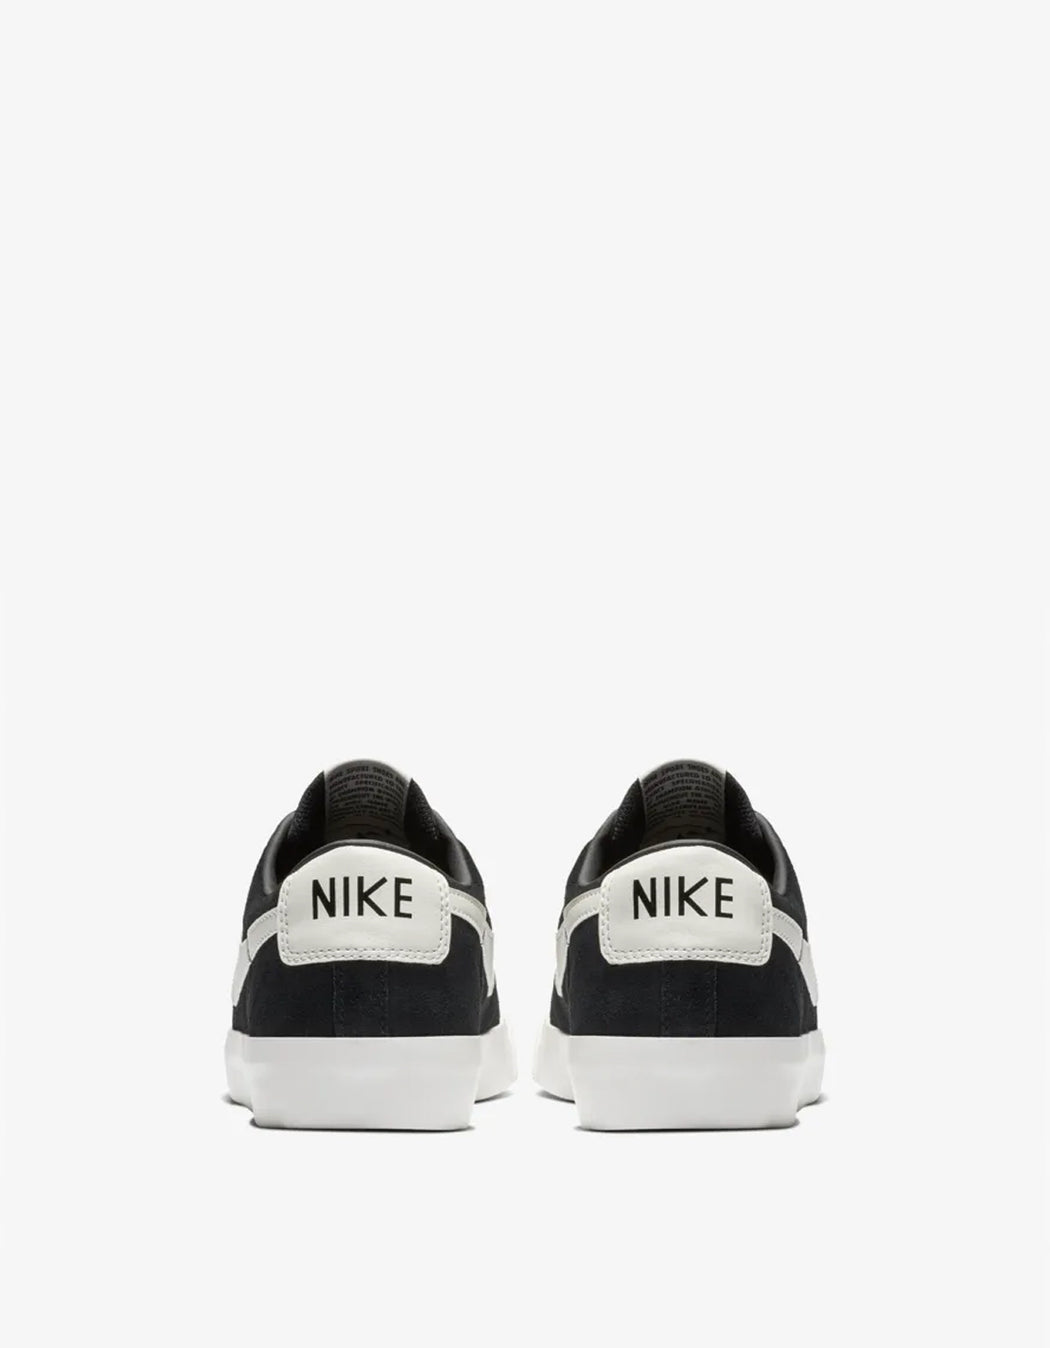 Nike SB Zoom Blazer Low GT Black Sail